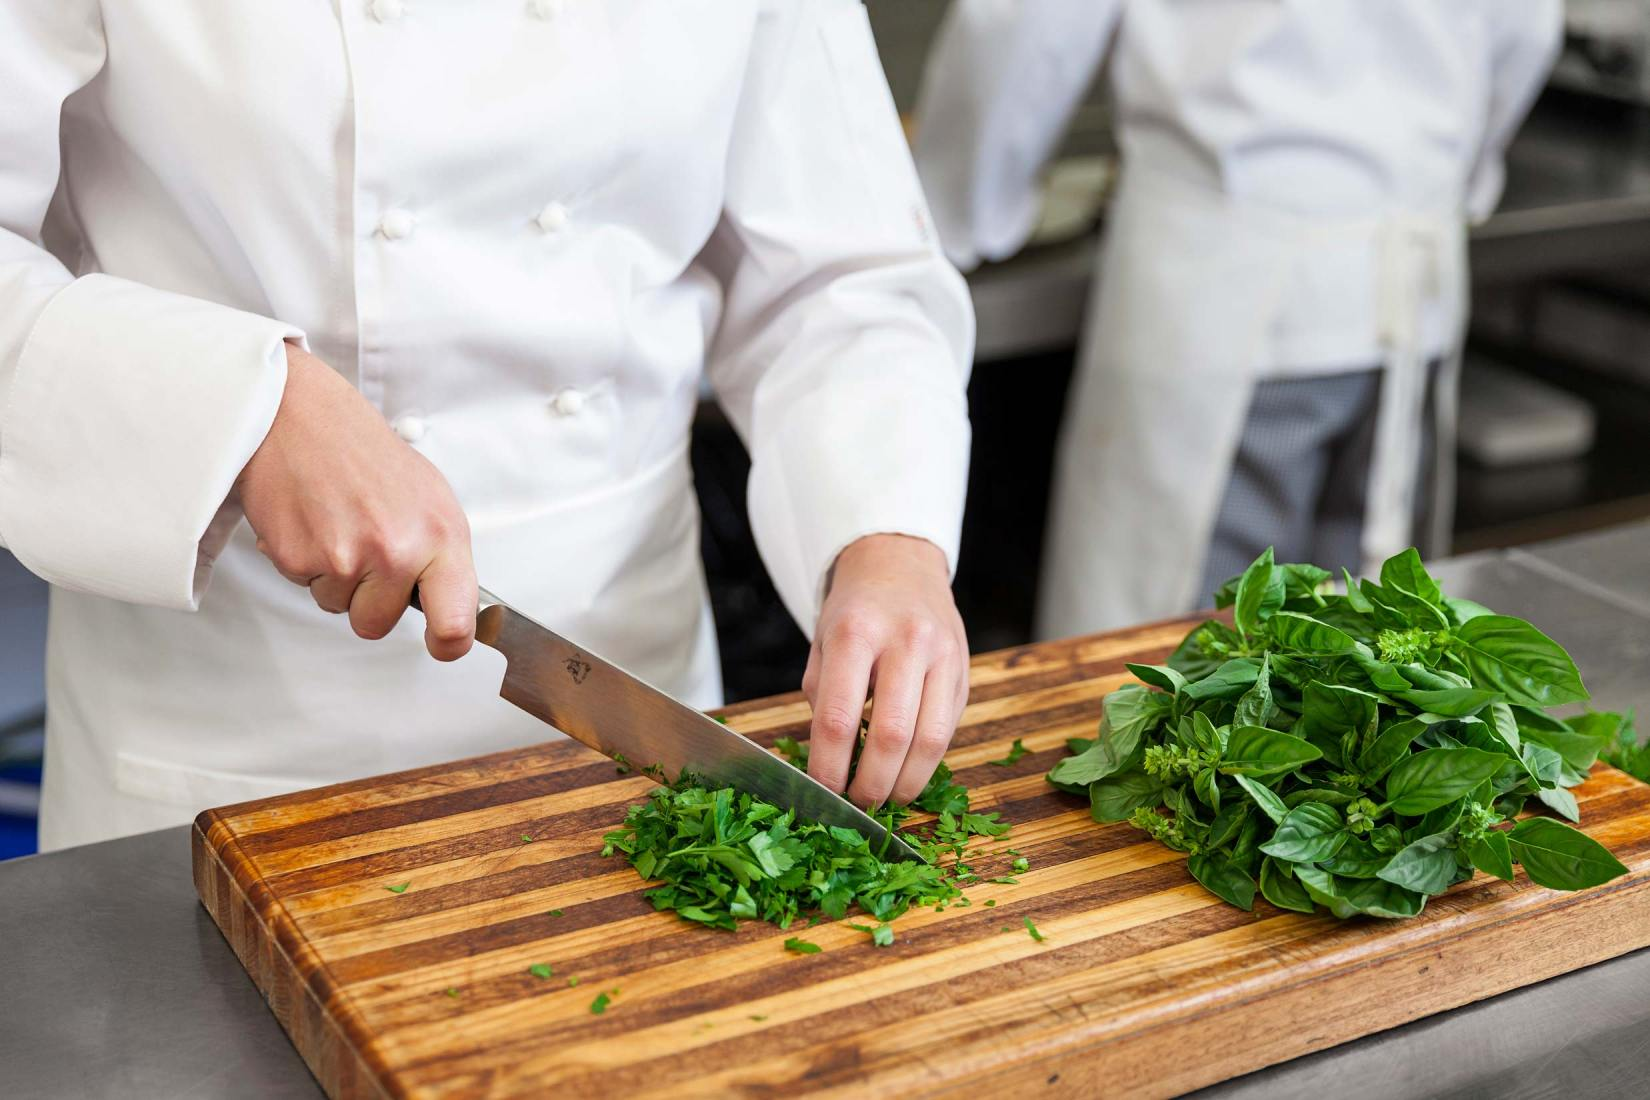 16119-0286-Image-Workshop-Melbourne-photographer-hospitality-chef-chopping-herbs-kitchen